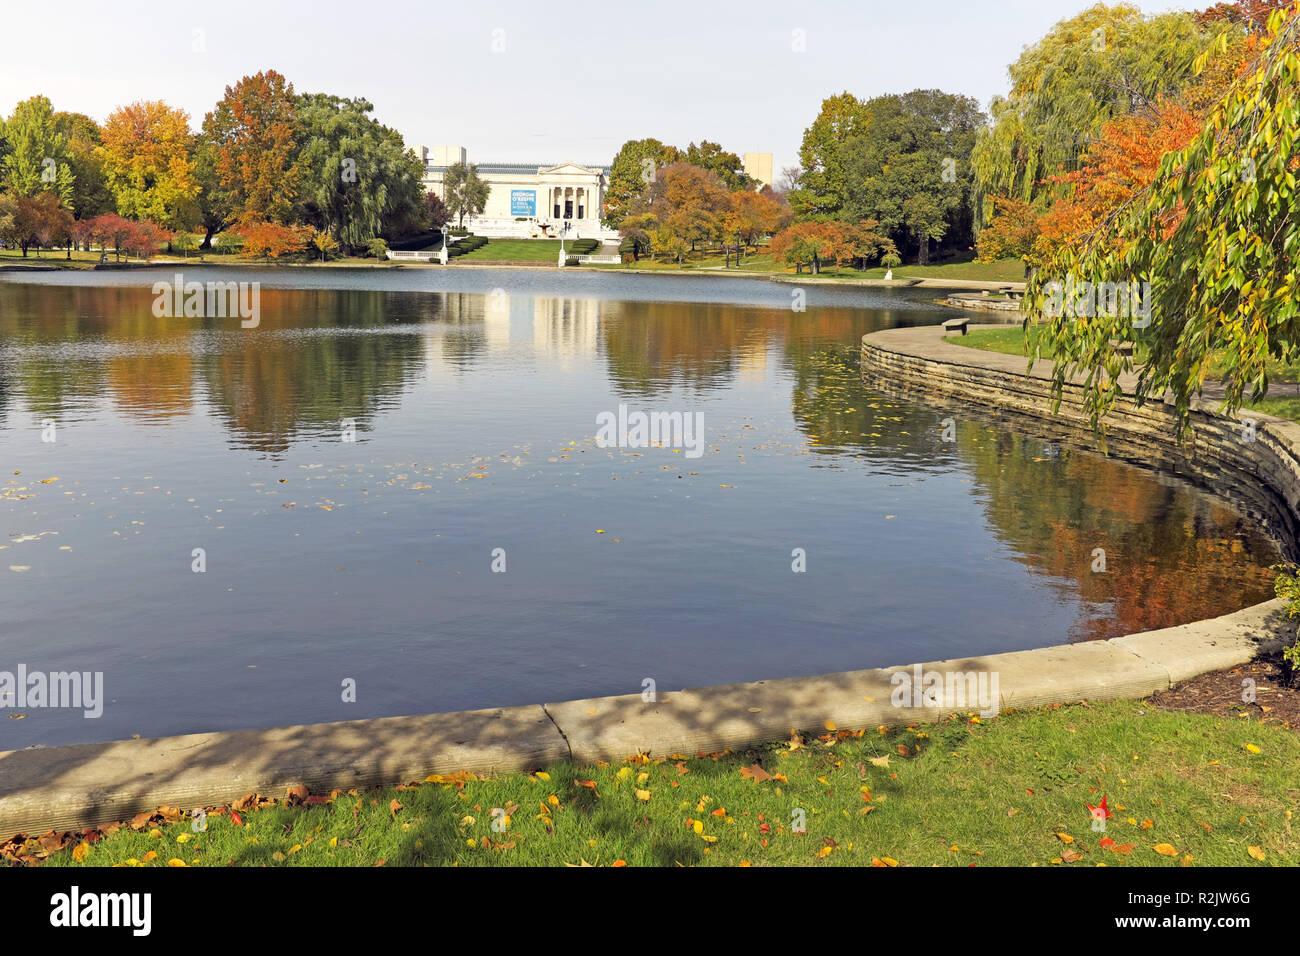 Wade Park Lagoon surounded by fall-colored folliage with the Cleveland Museum of Art in the distance in Cleveland, Ohio, USA. Stock Photo